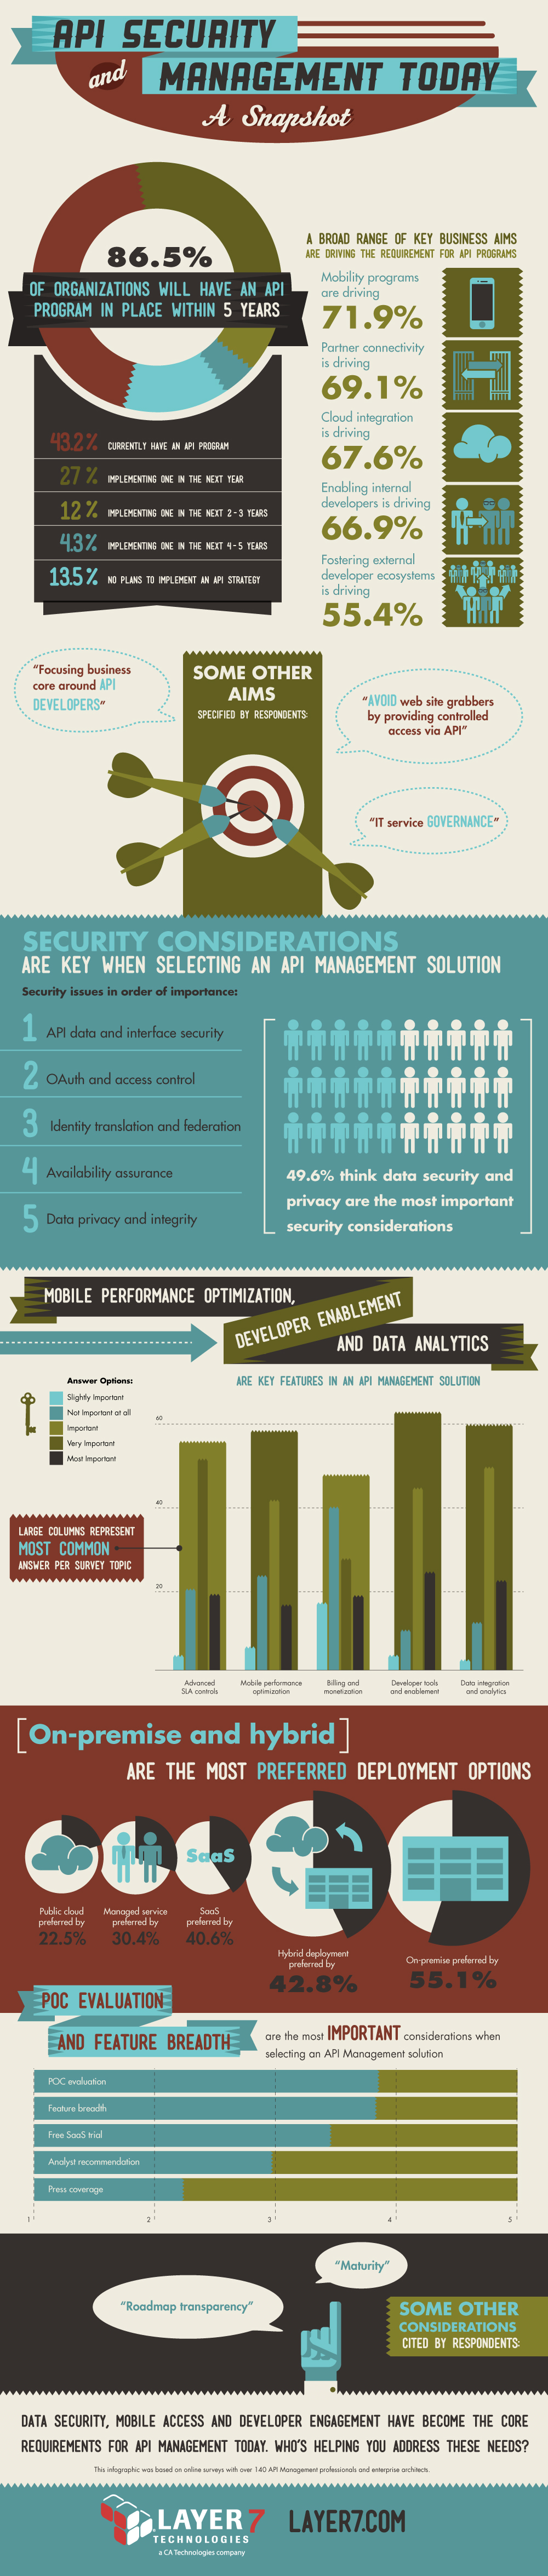 Layer 7_API Security & Mgmt Infographic_Embargoed_07.31.13